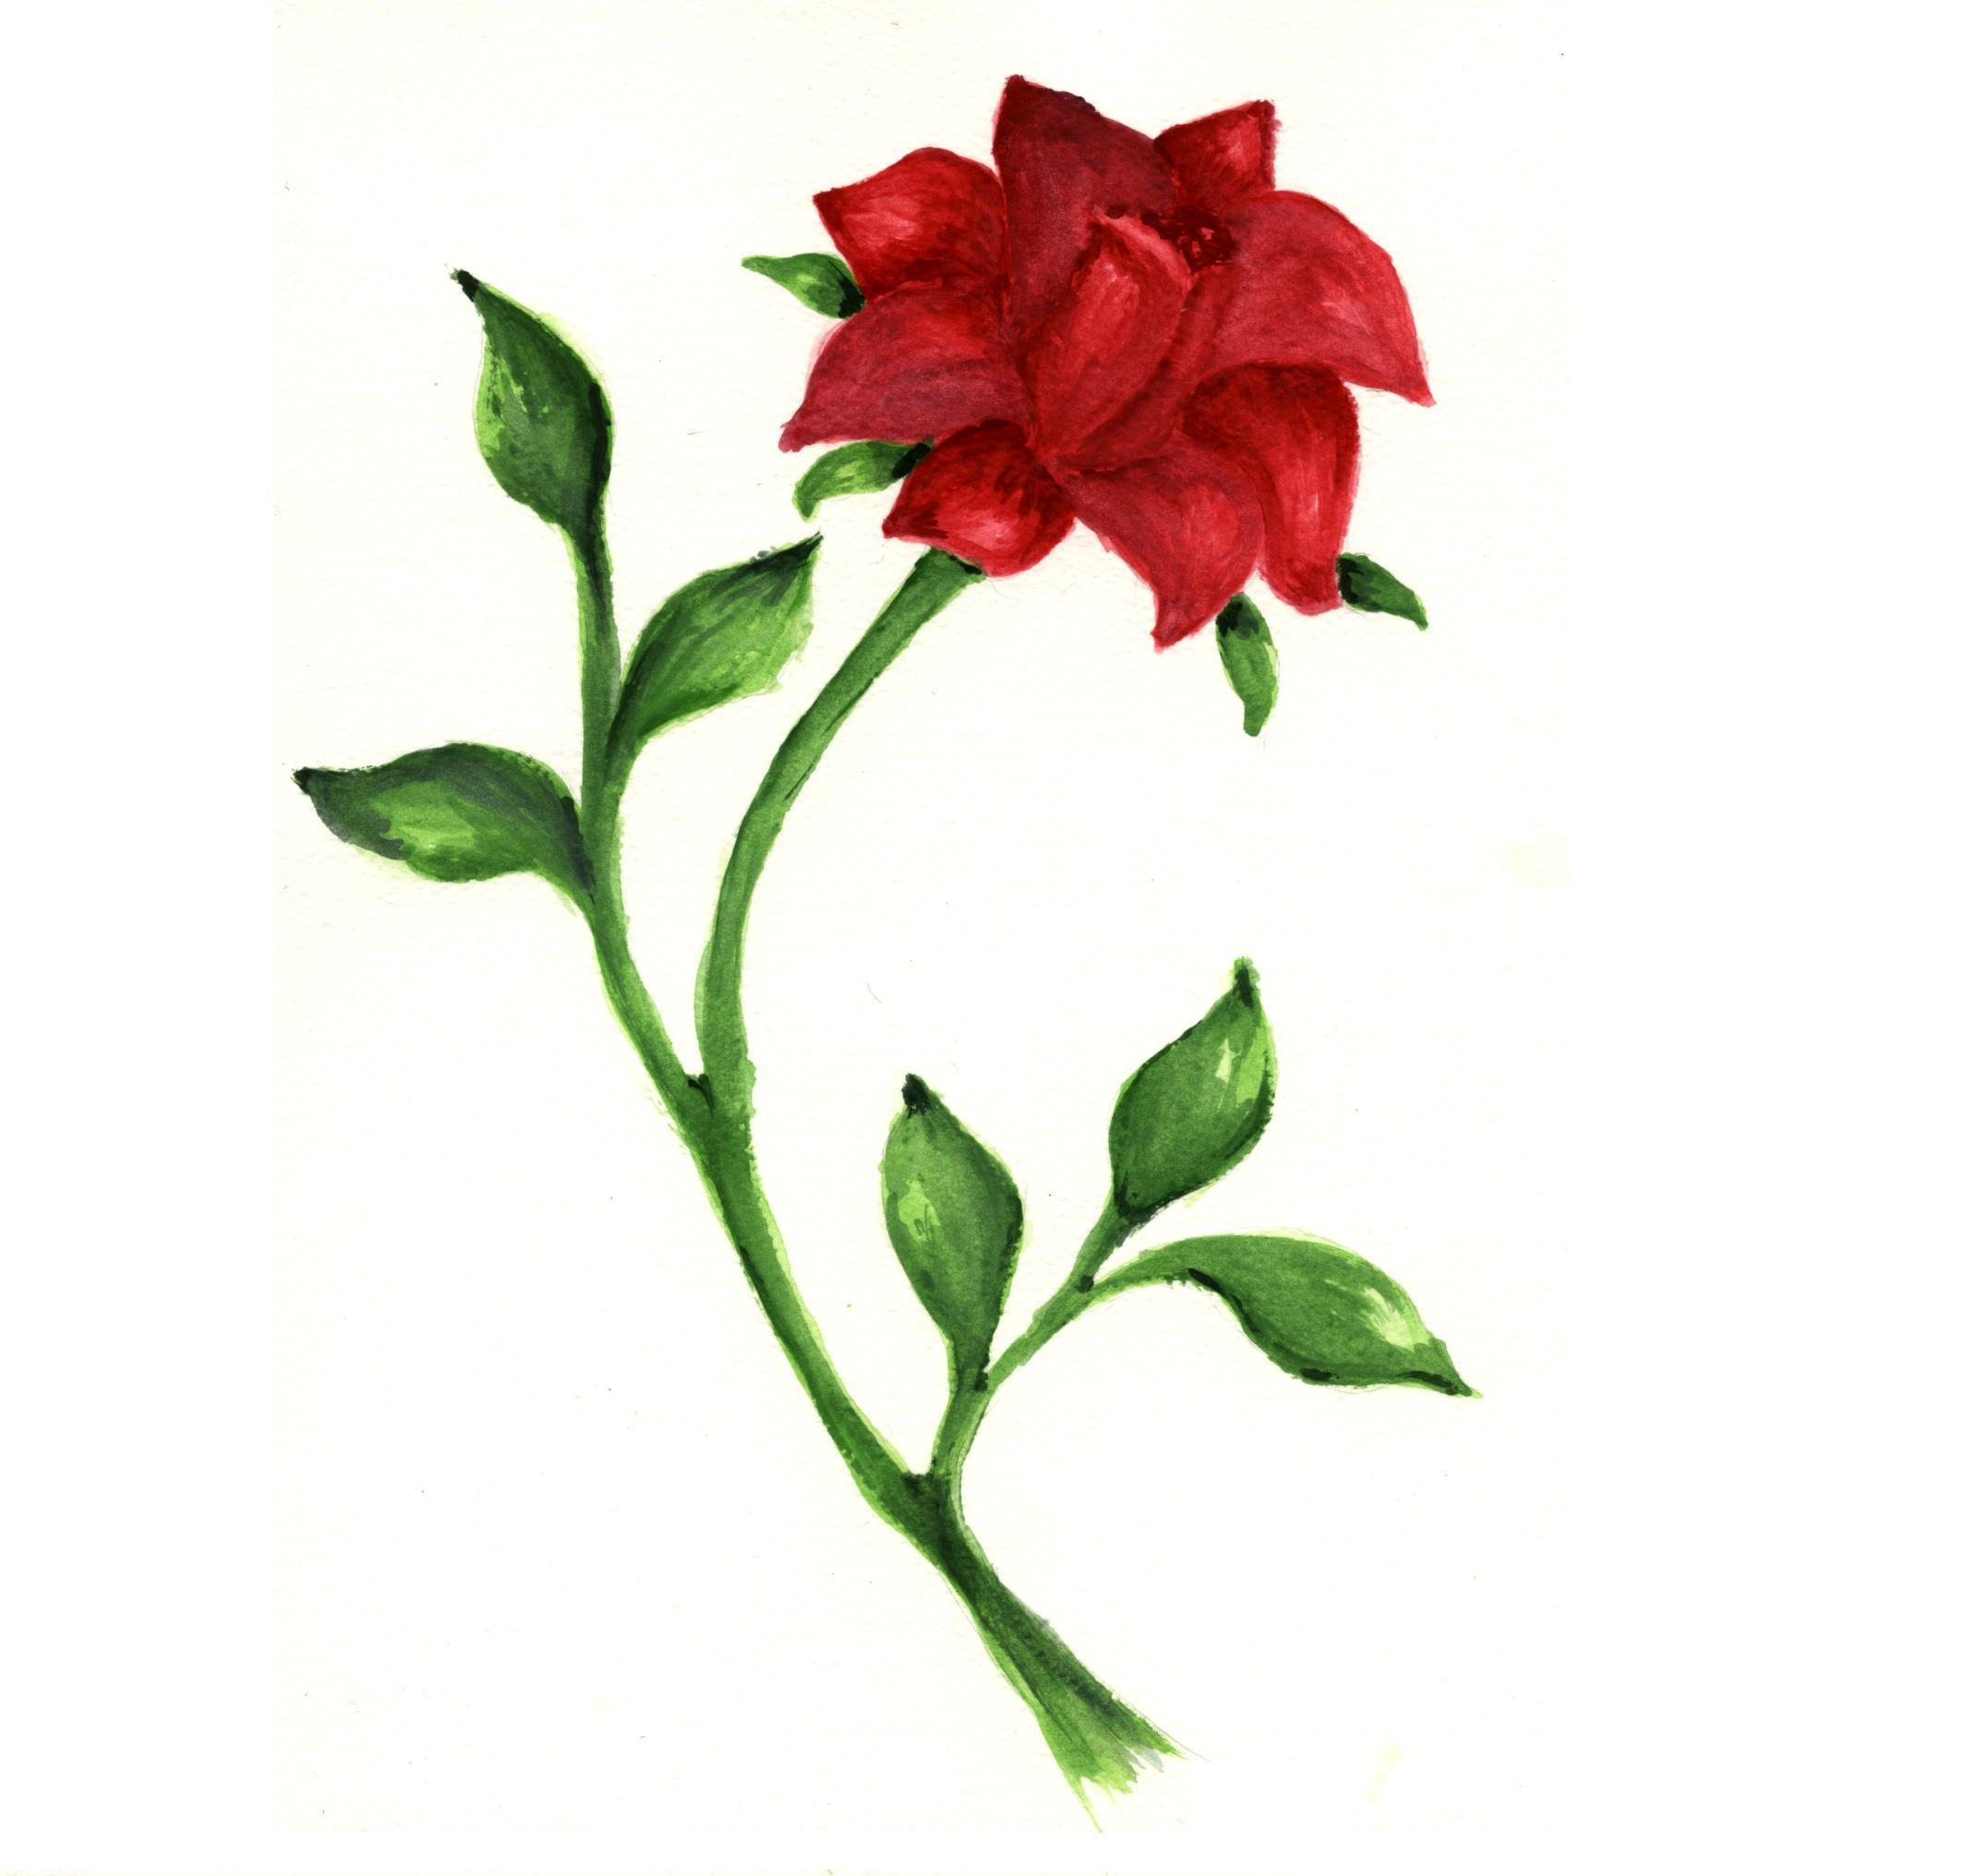 Drawn red rose disney princess  you drawn Which collectable